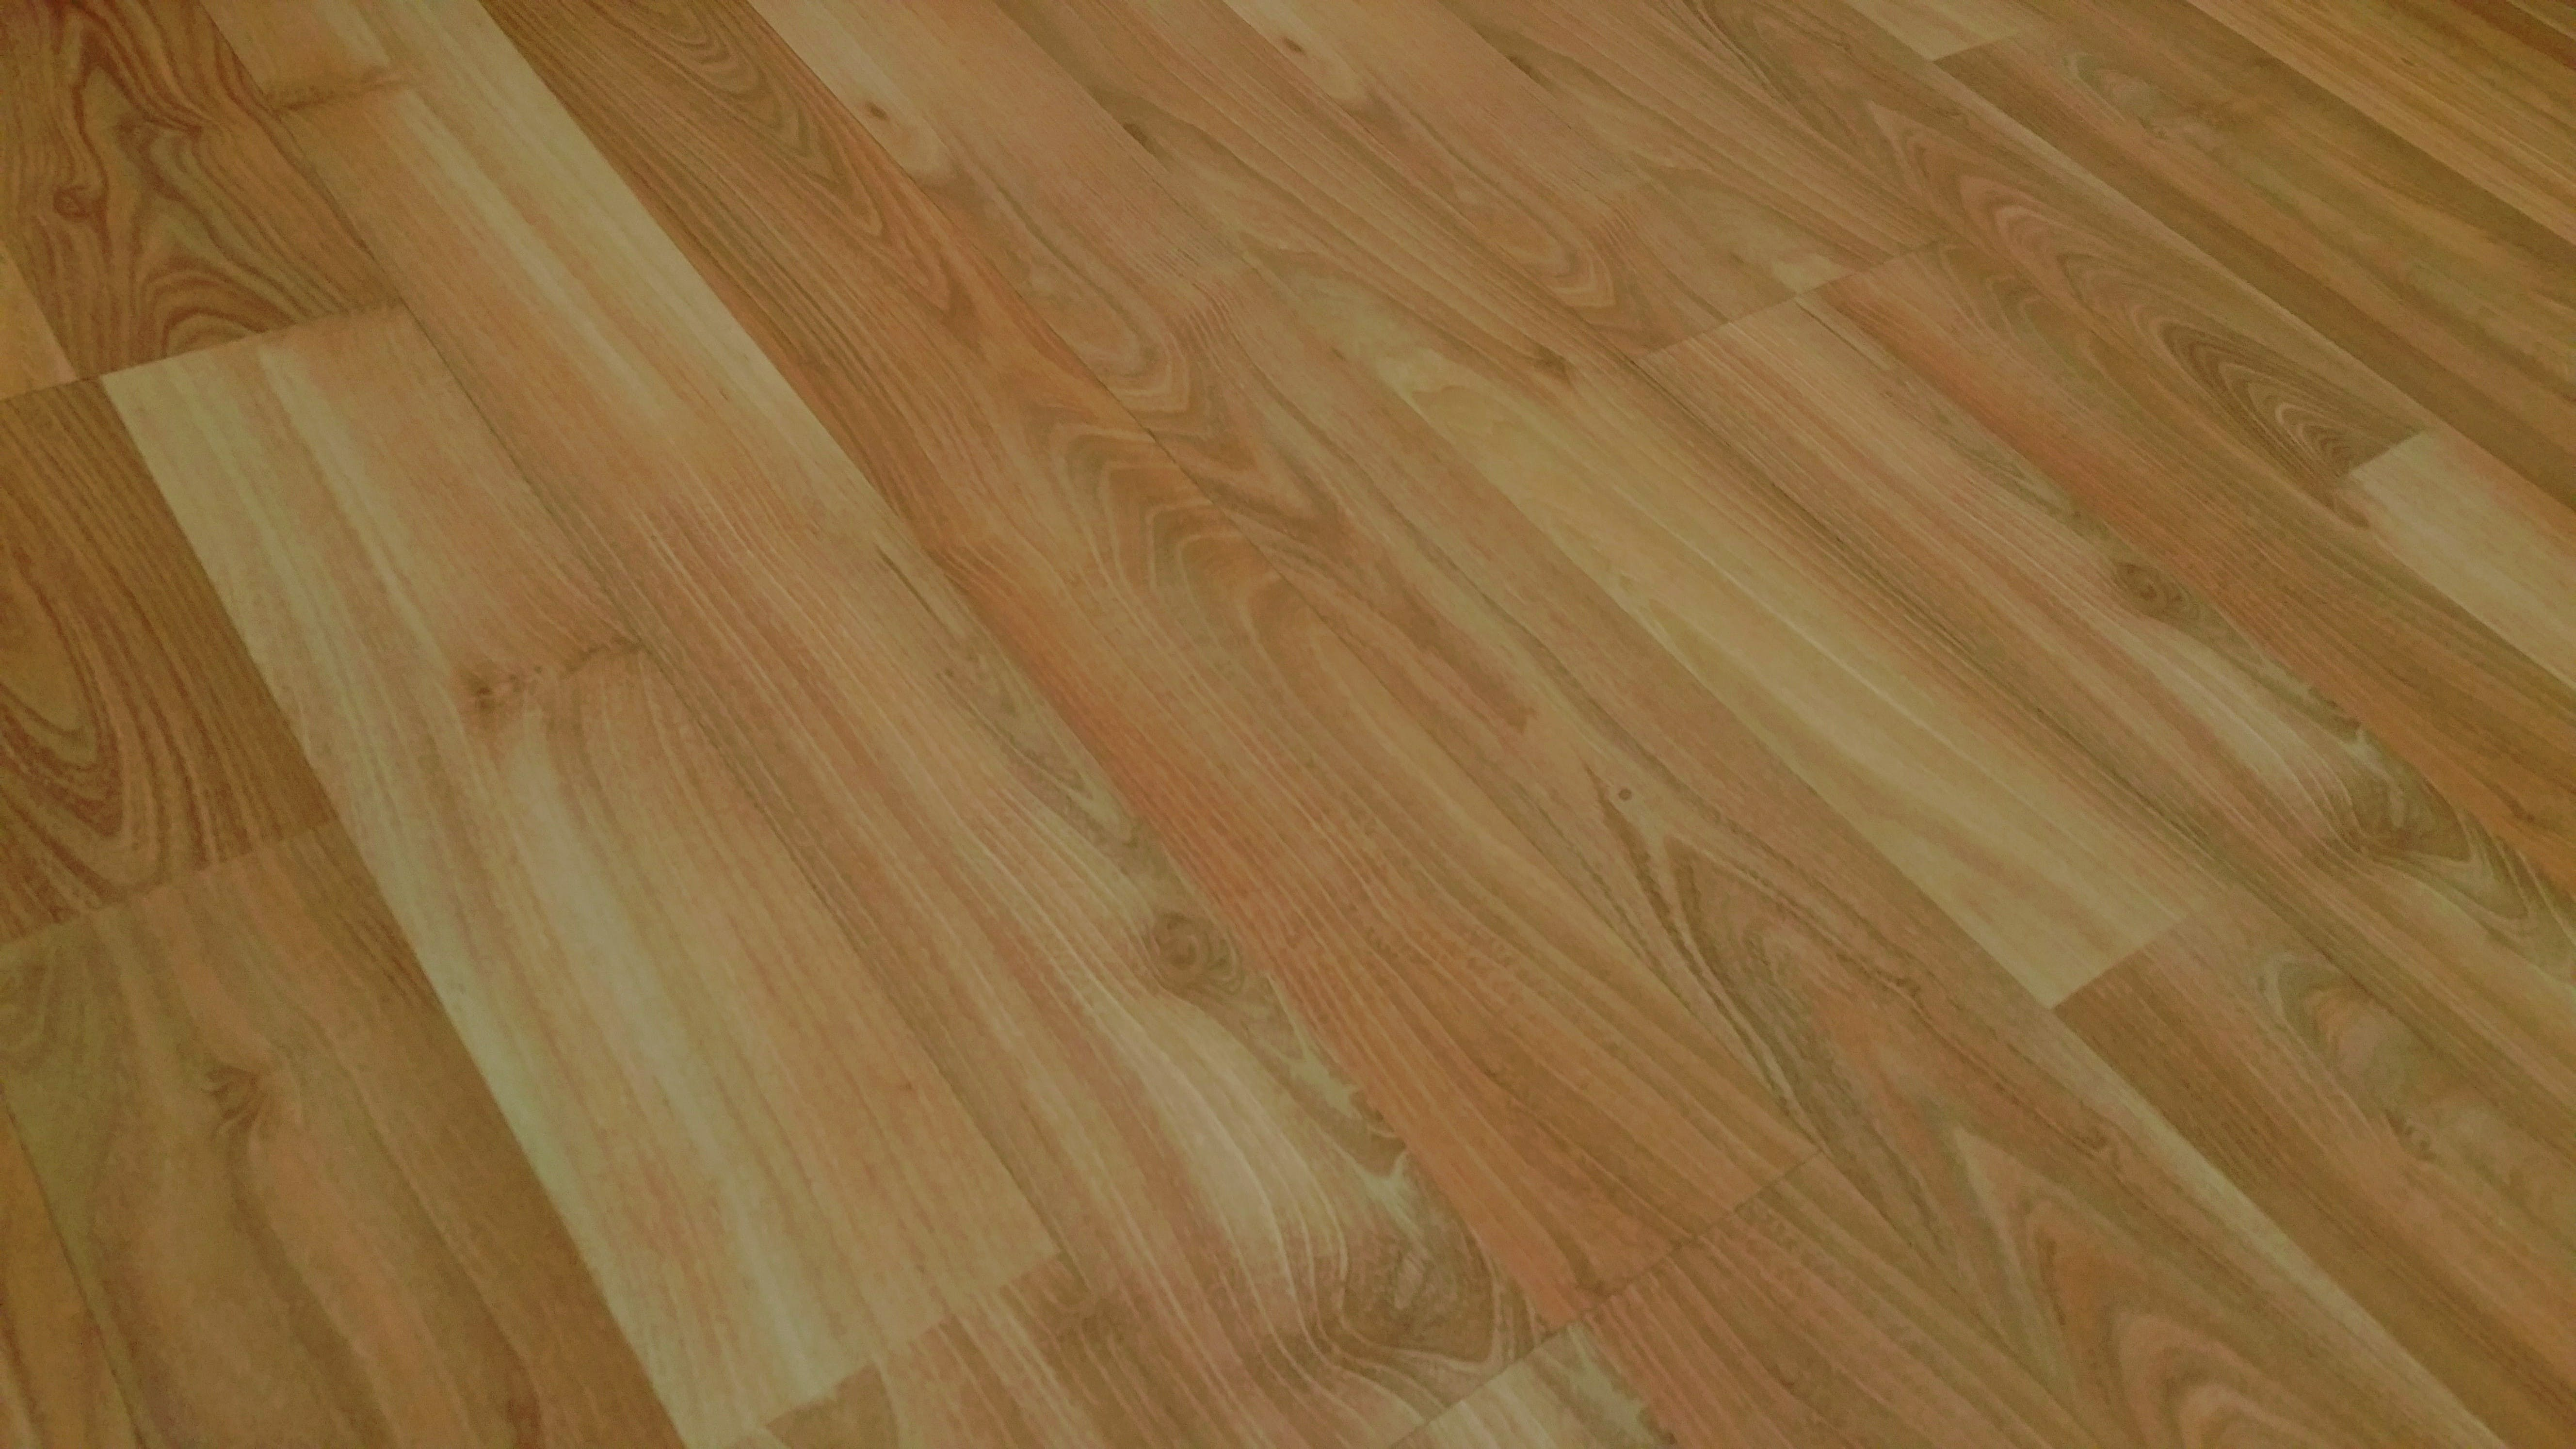 Brown Wooden Parquet Flooring